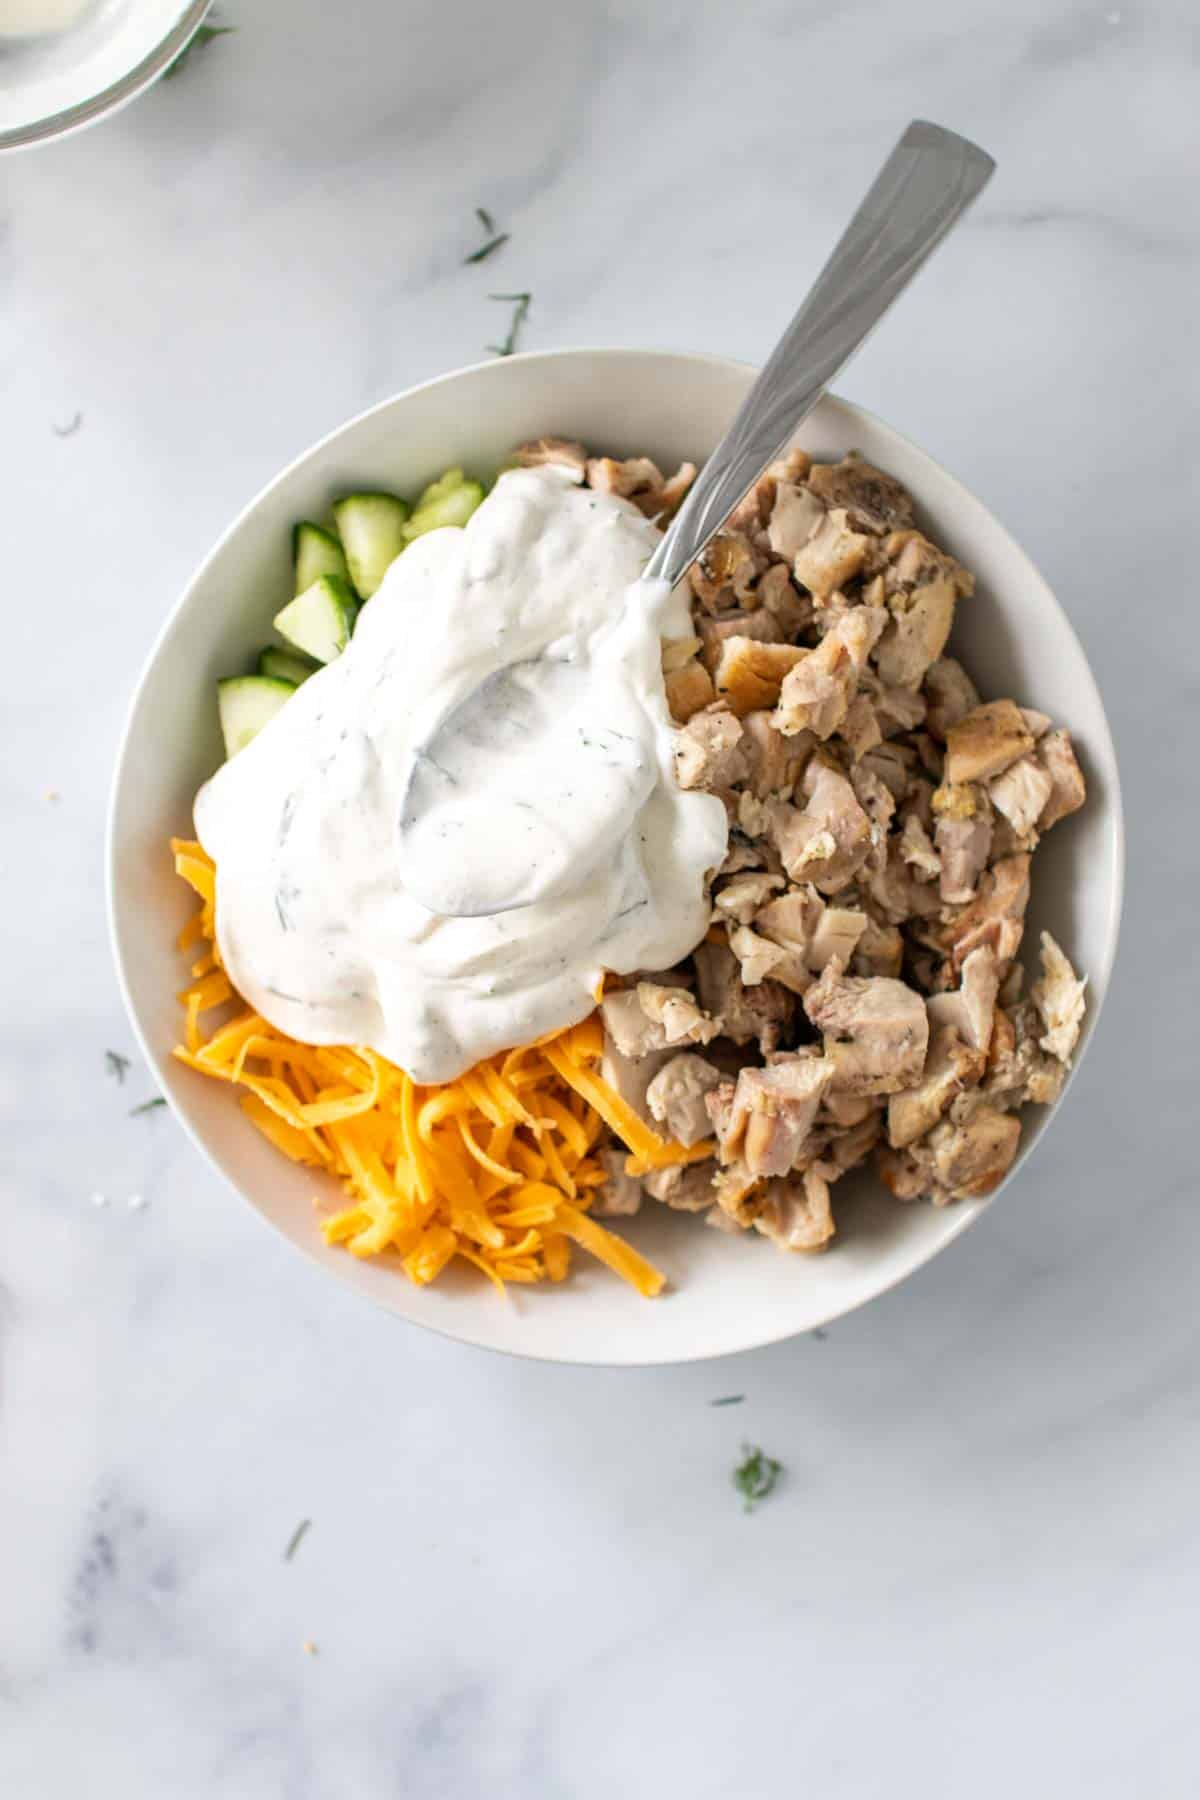 Greek yogurt mixture added to bowl of chicken thighs, cheddar, and cucumbers with a spoon, as seen from above